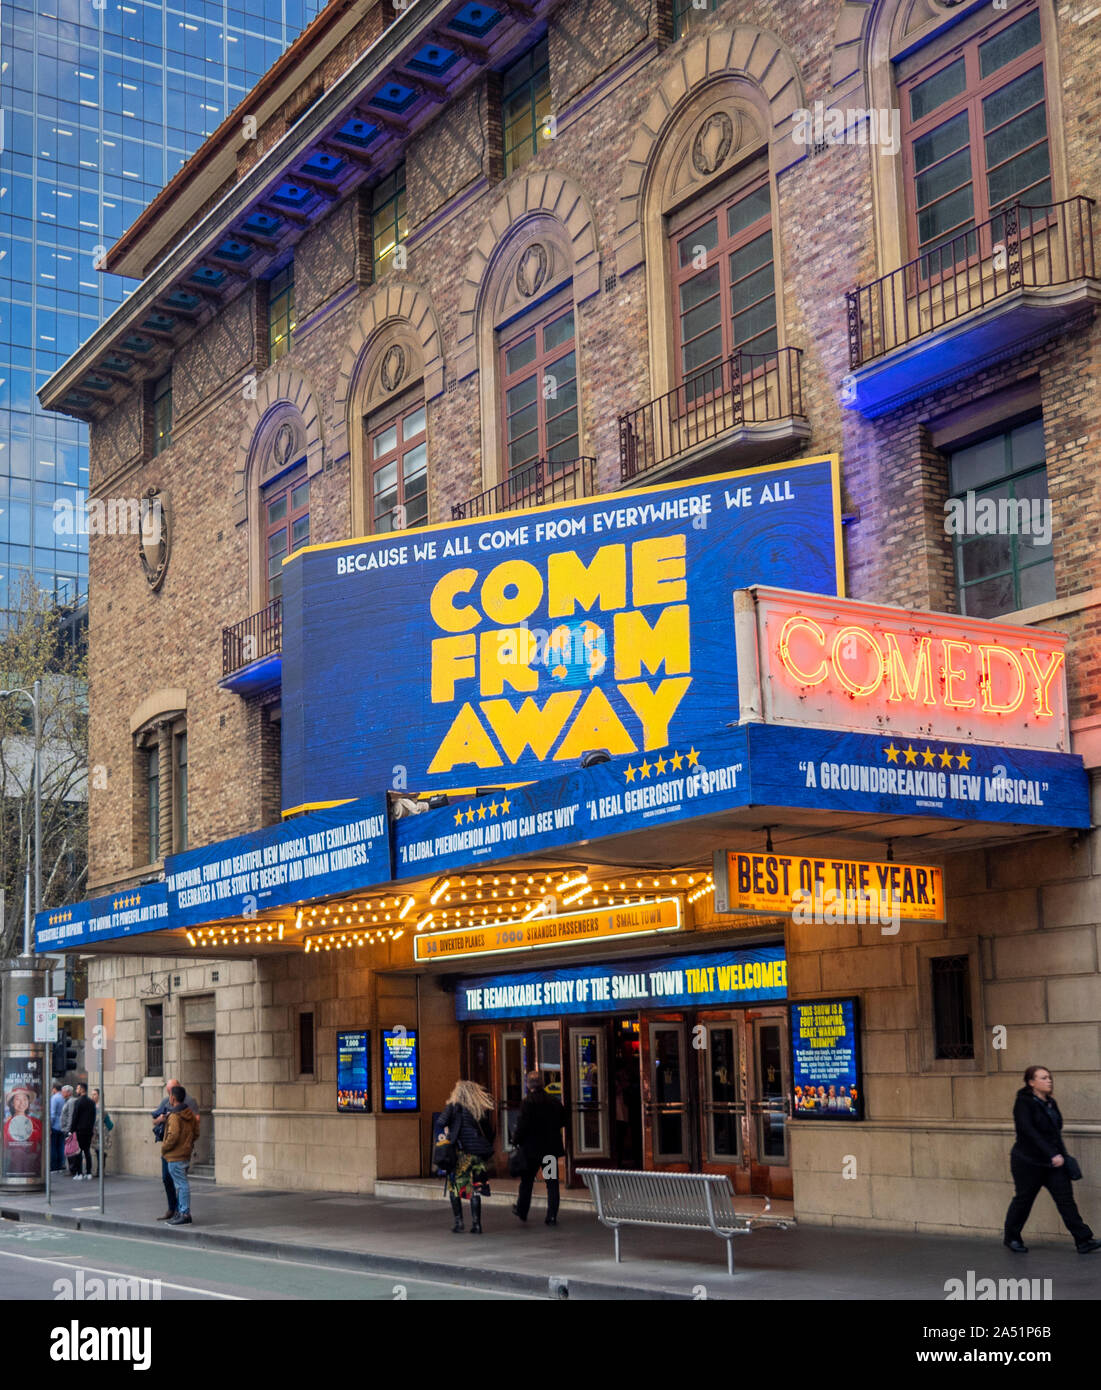 Musical Come From Away showing at Comedy Theatre Exhibition Street Melbourne Victoria Australia. Stock Photo